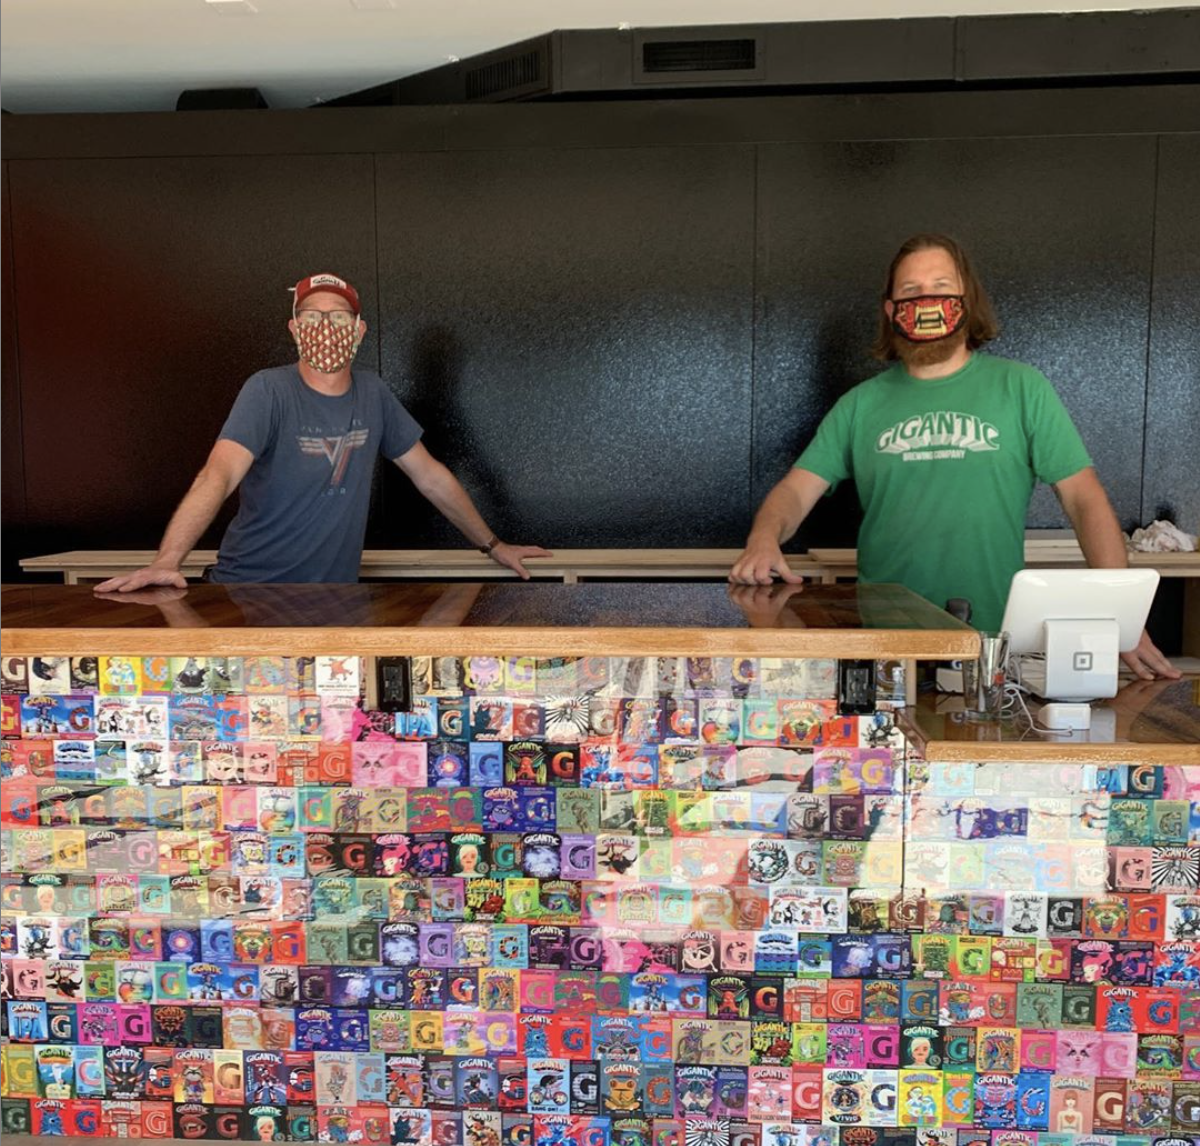 Van Havig and Ben Love at the new Gigantic Robot Room. (image courtesy of Gigantic Brewing)